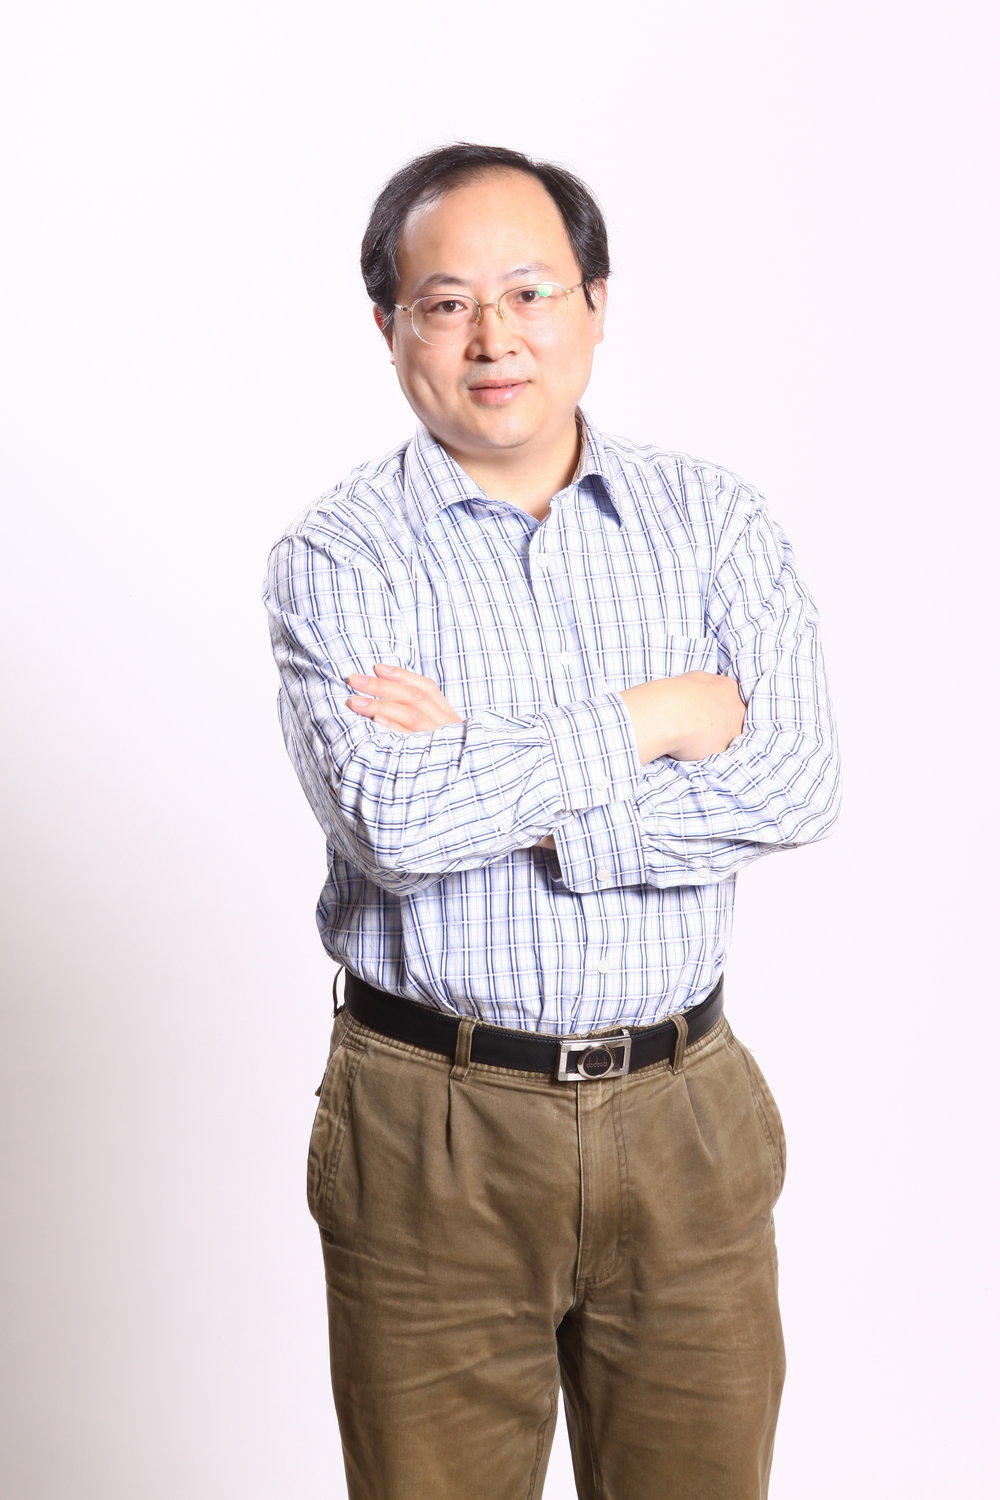 Chinese Plastic and Reconstructive Surgeon Sufan Wu, M.D., Ph.D